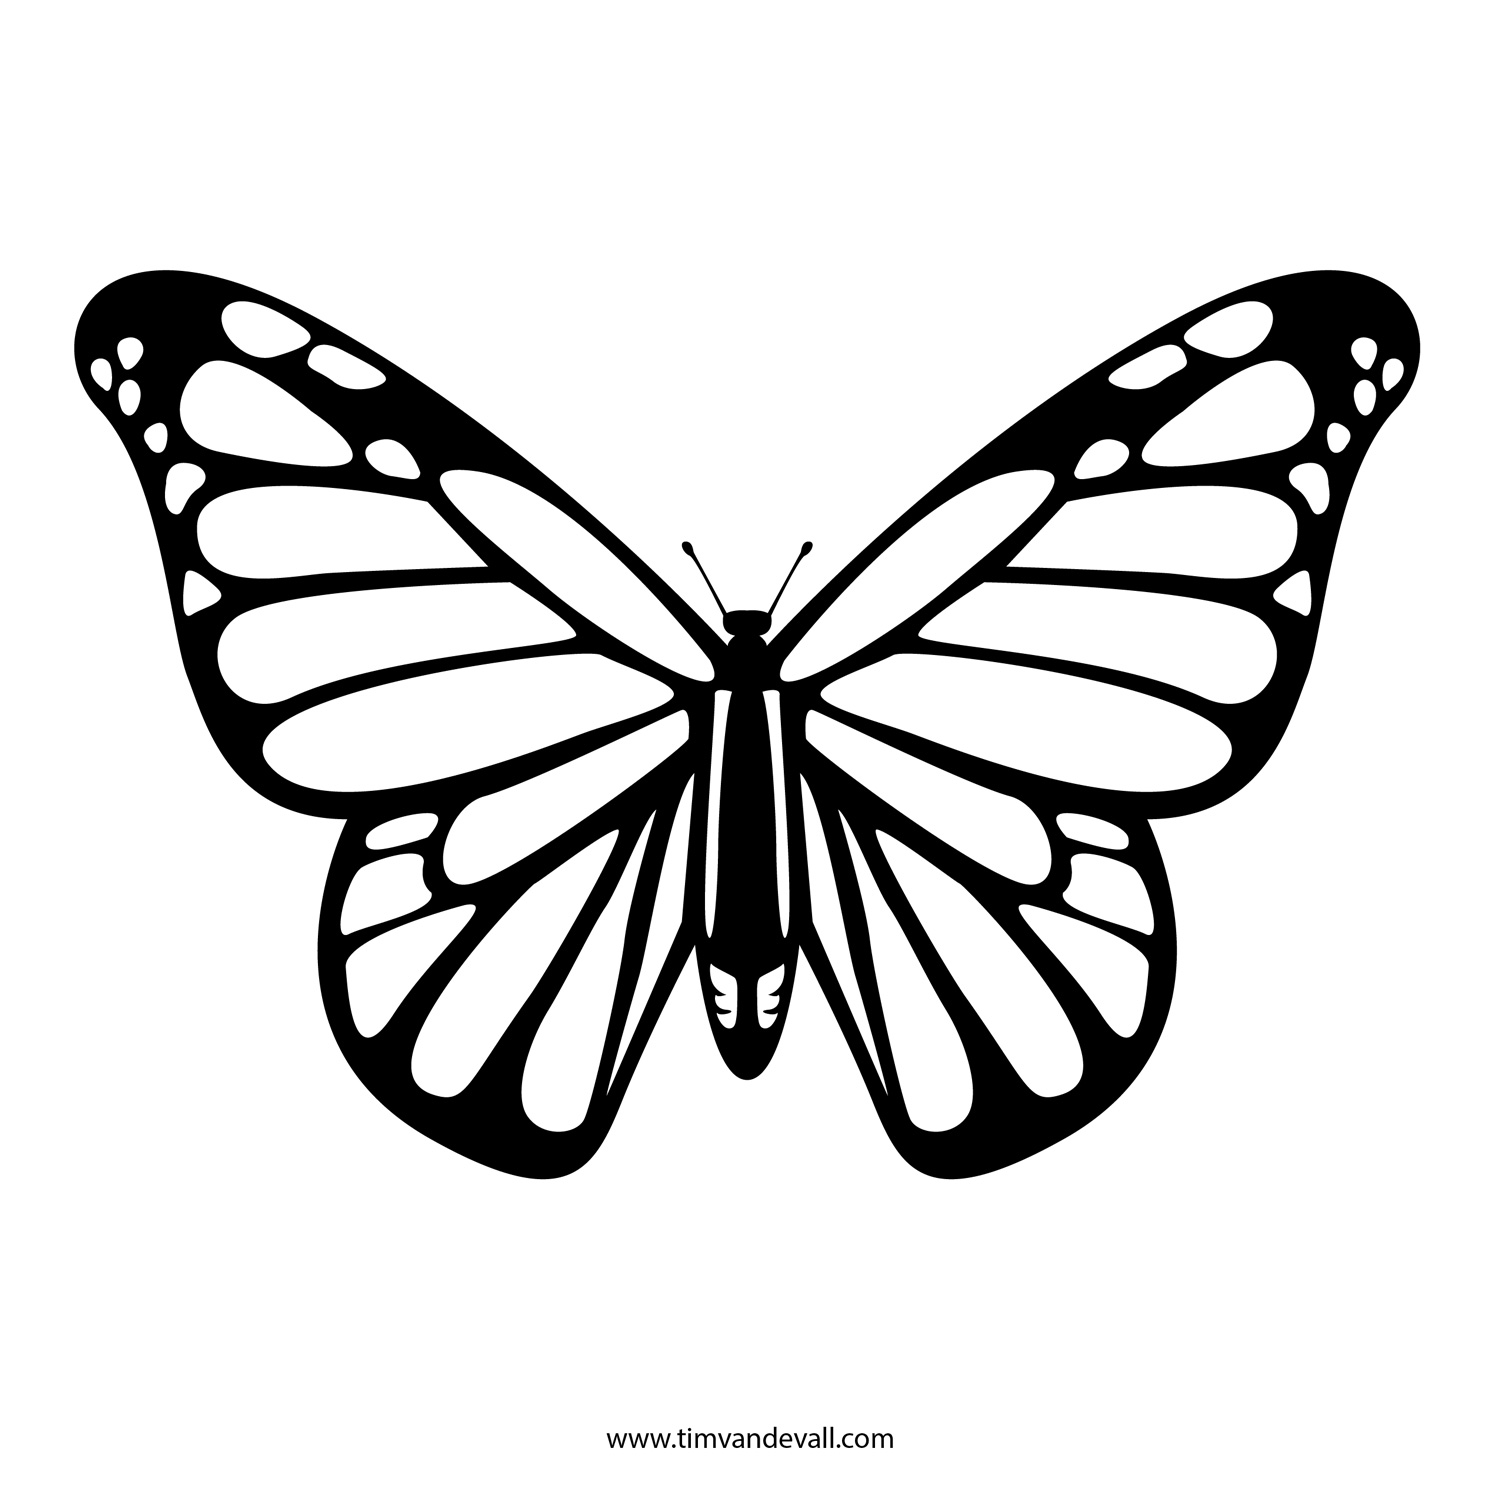 6 Images of Free Stencils Printable Butterfly Outline